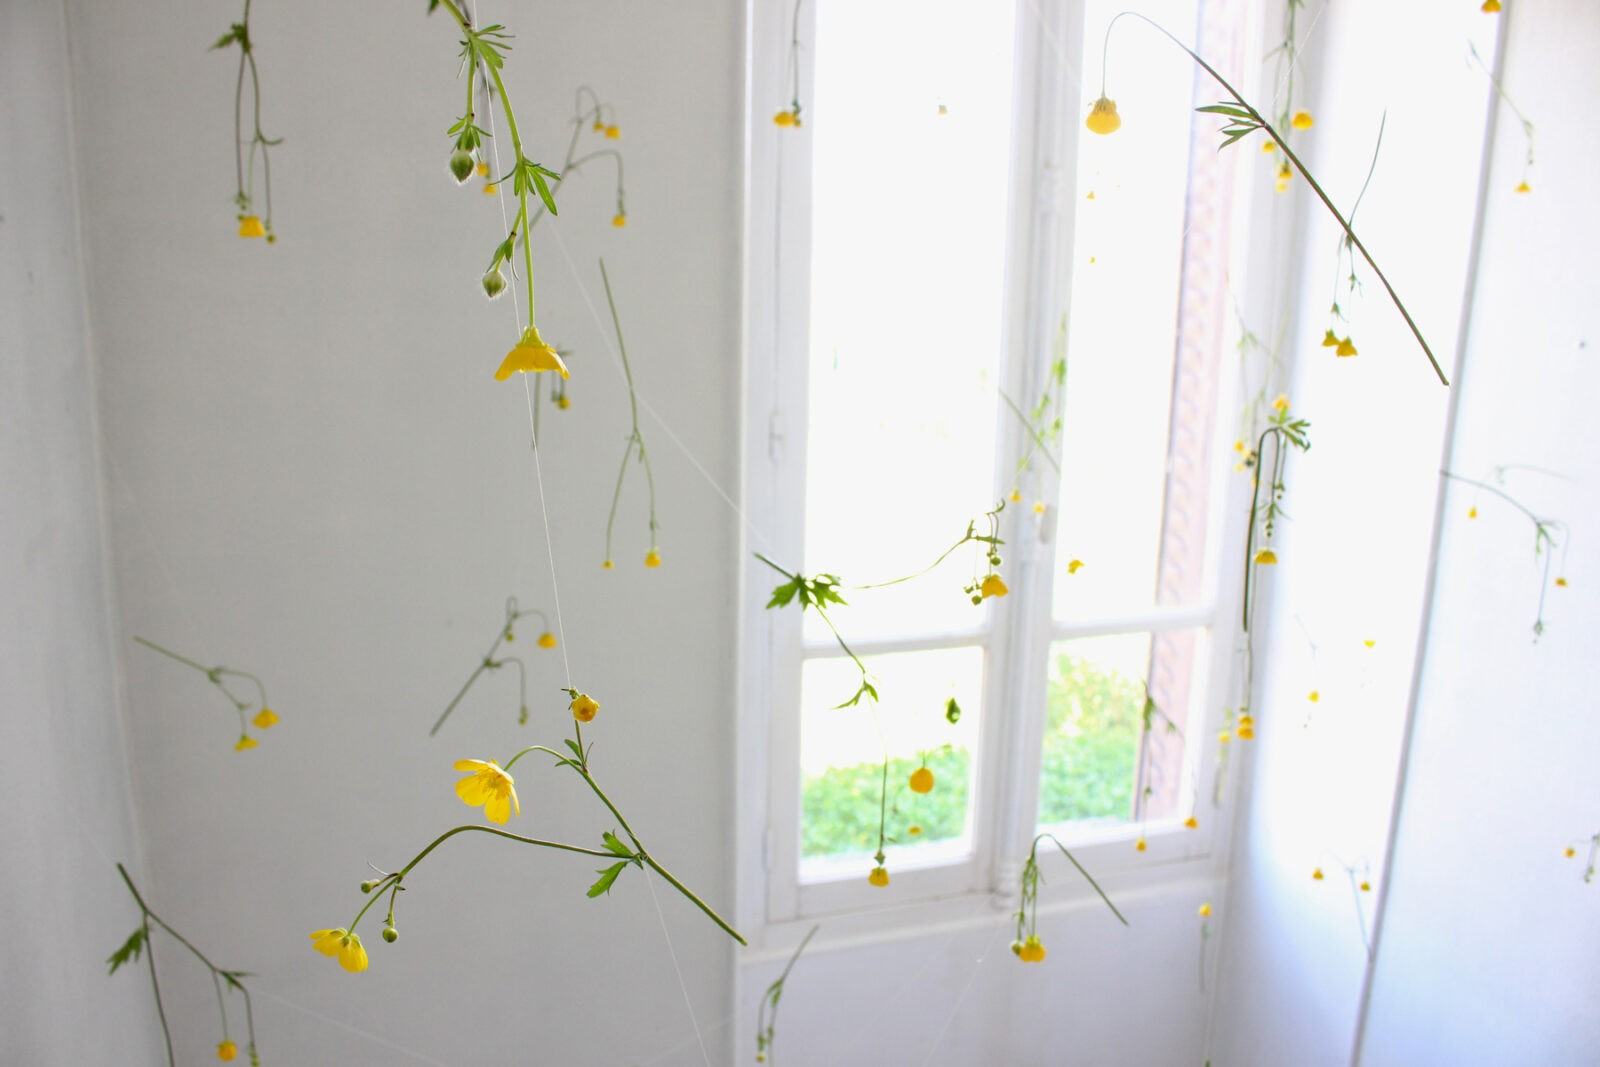 Delicate Accumulations of Colorful Spring Flowers Installed in a Historic French Home